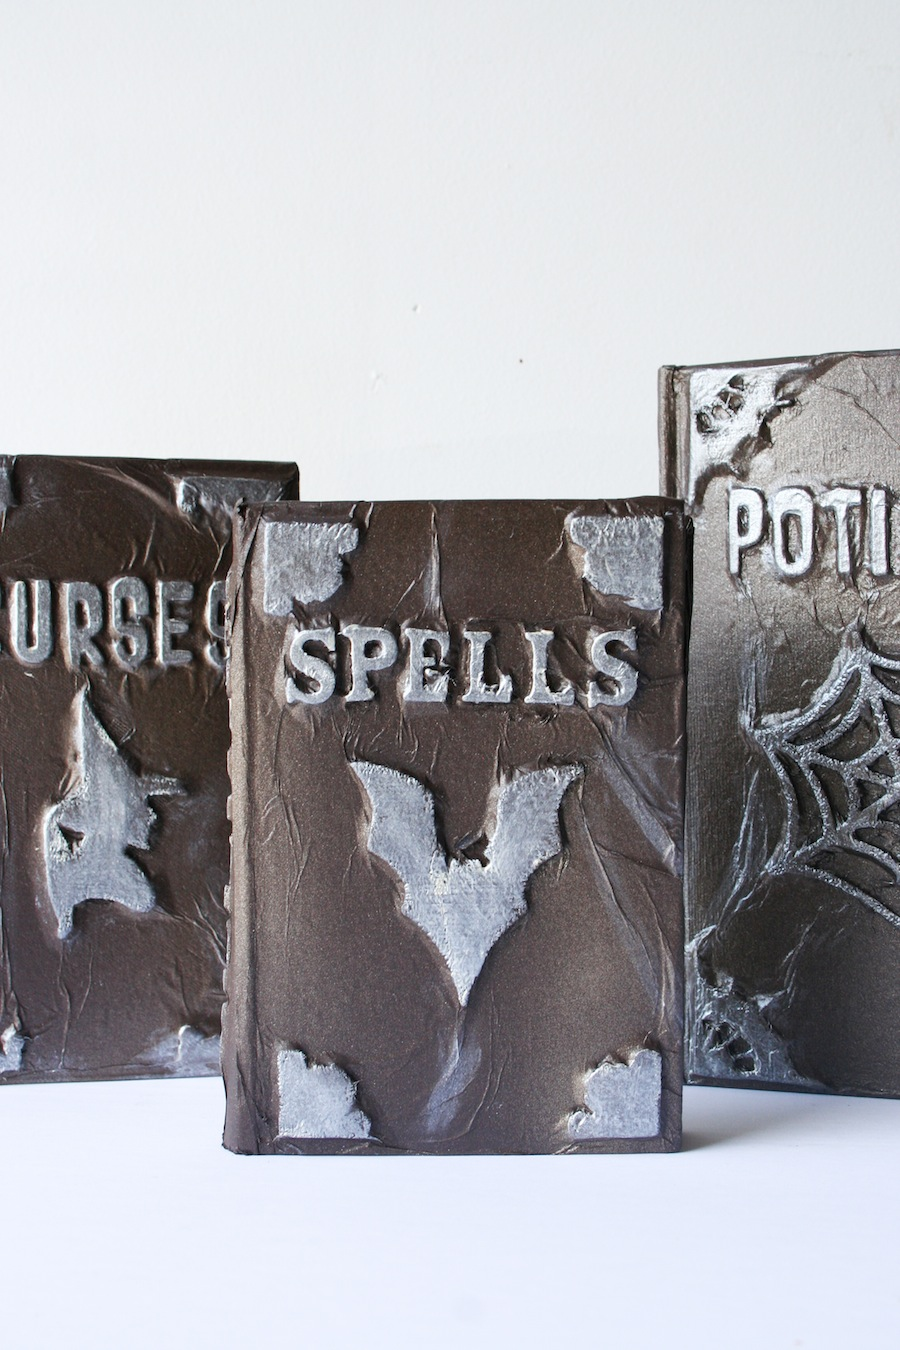 how to make a witches spell book